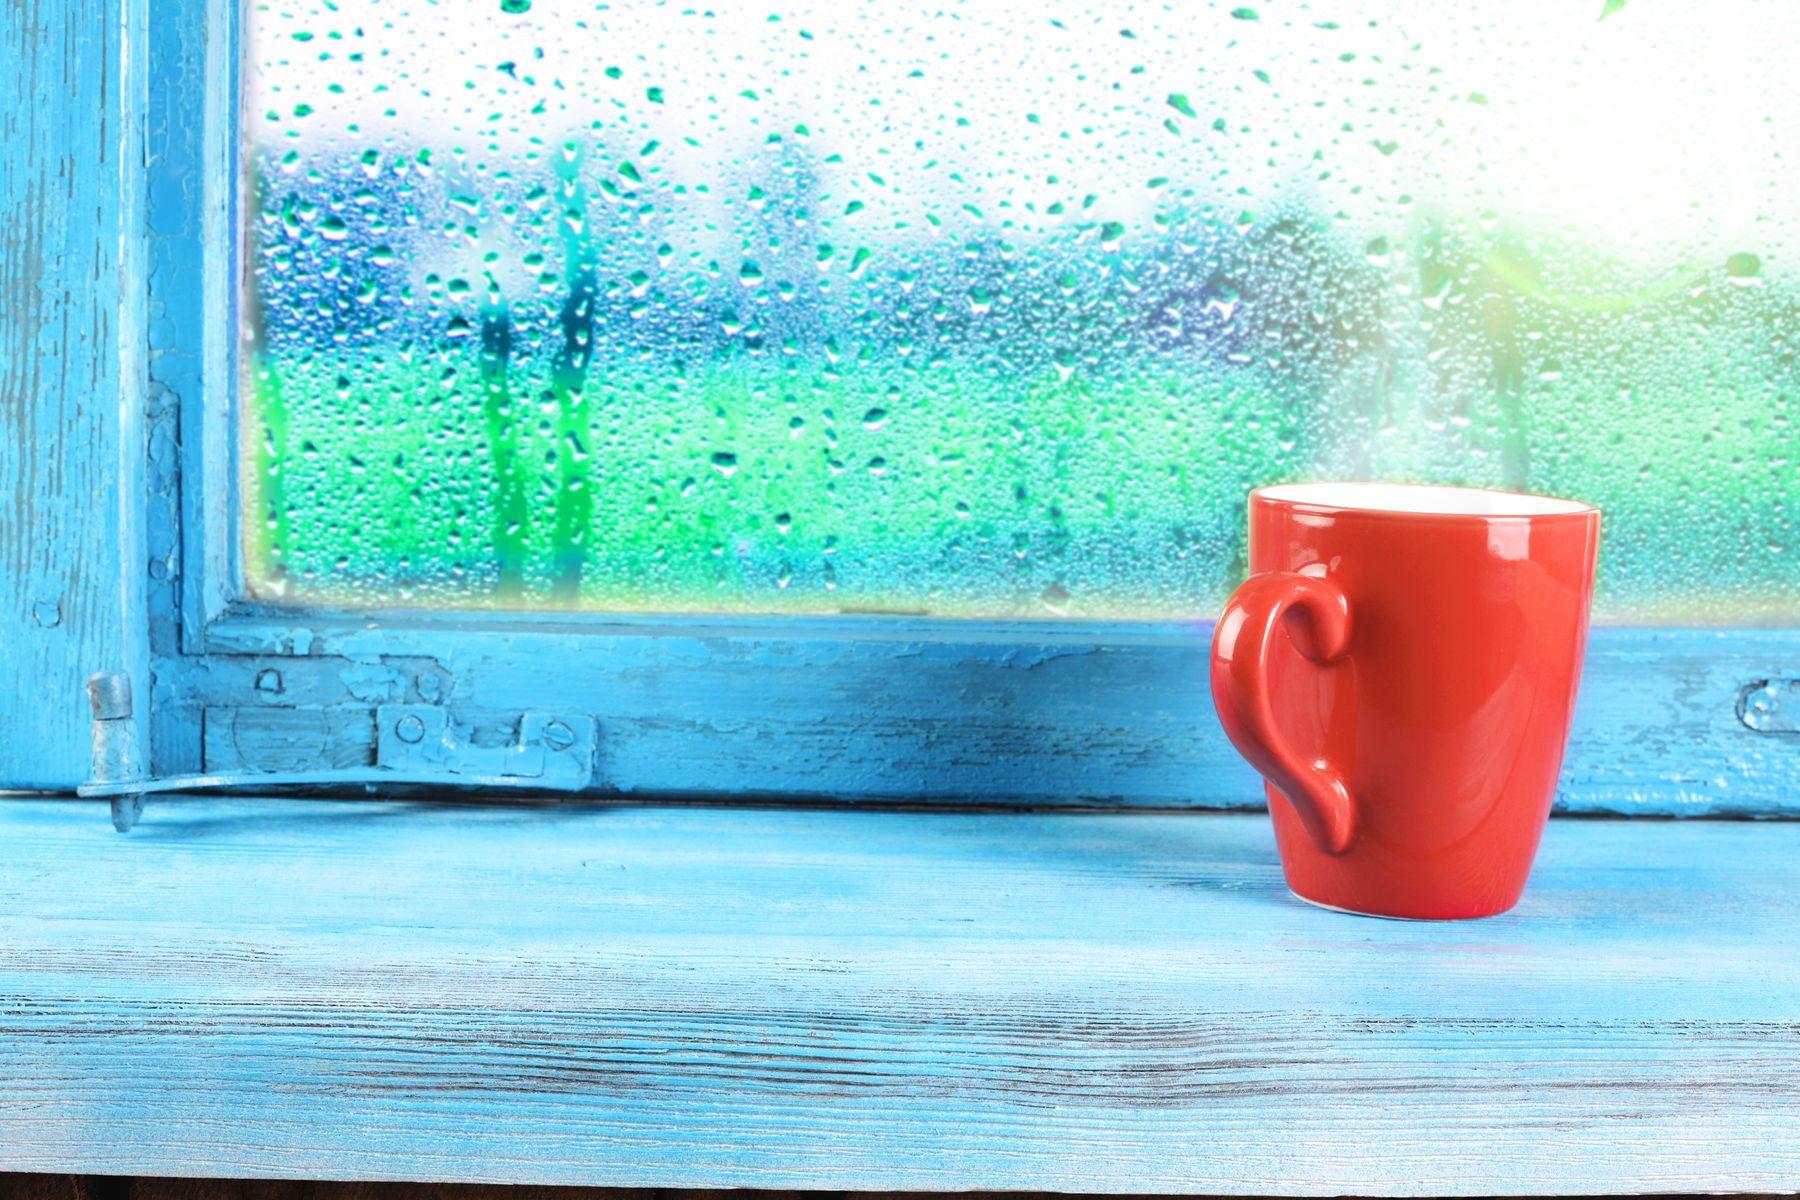 Wet rot: steaming red mug on the window sill of a window covered by condensation.